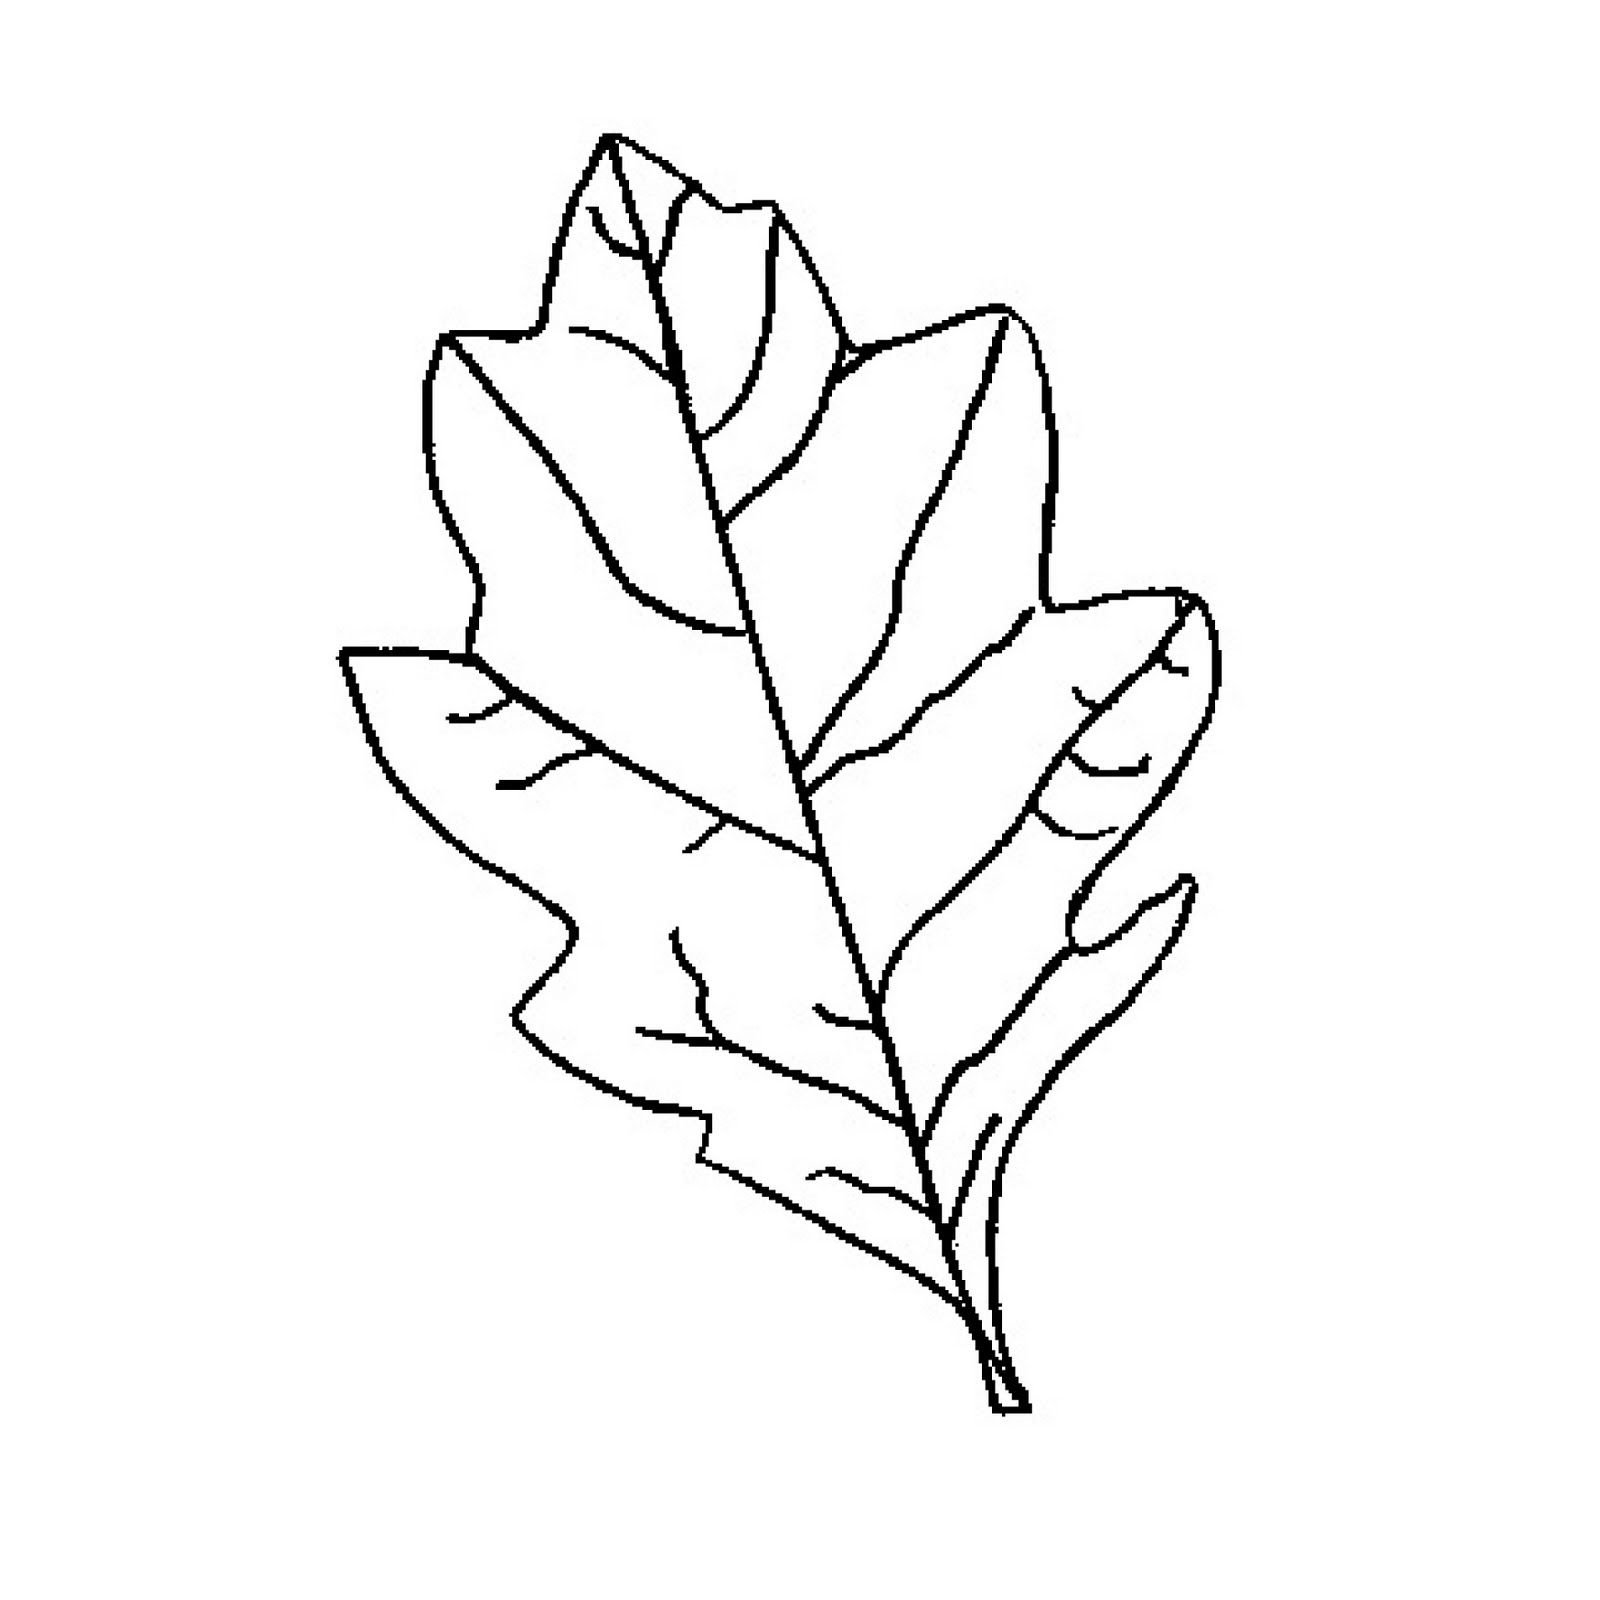 Oak Leaves Outline | Clipart Panda - Free Clipart Images